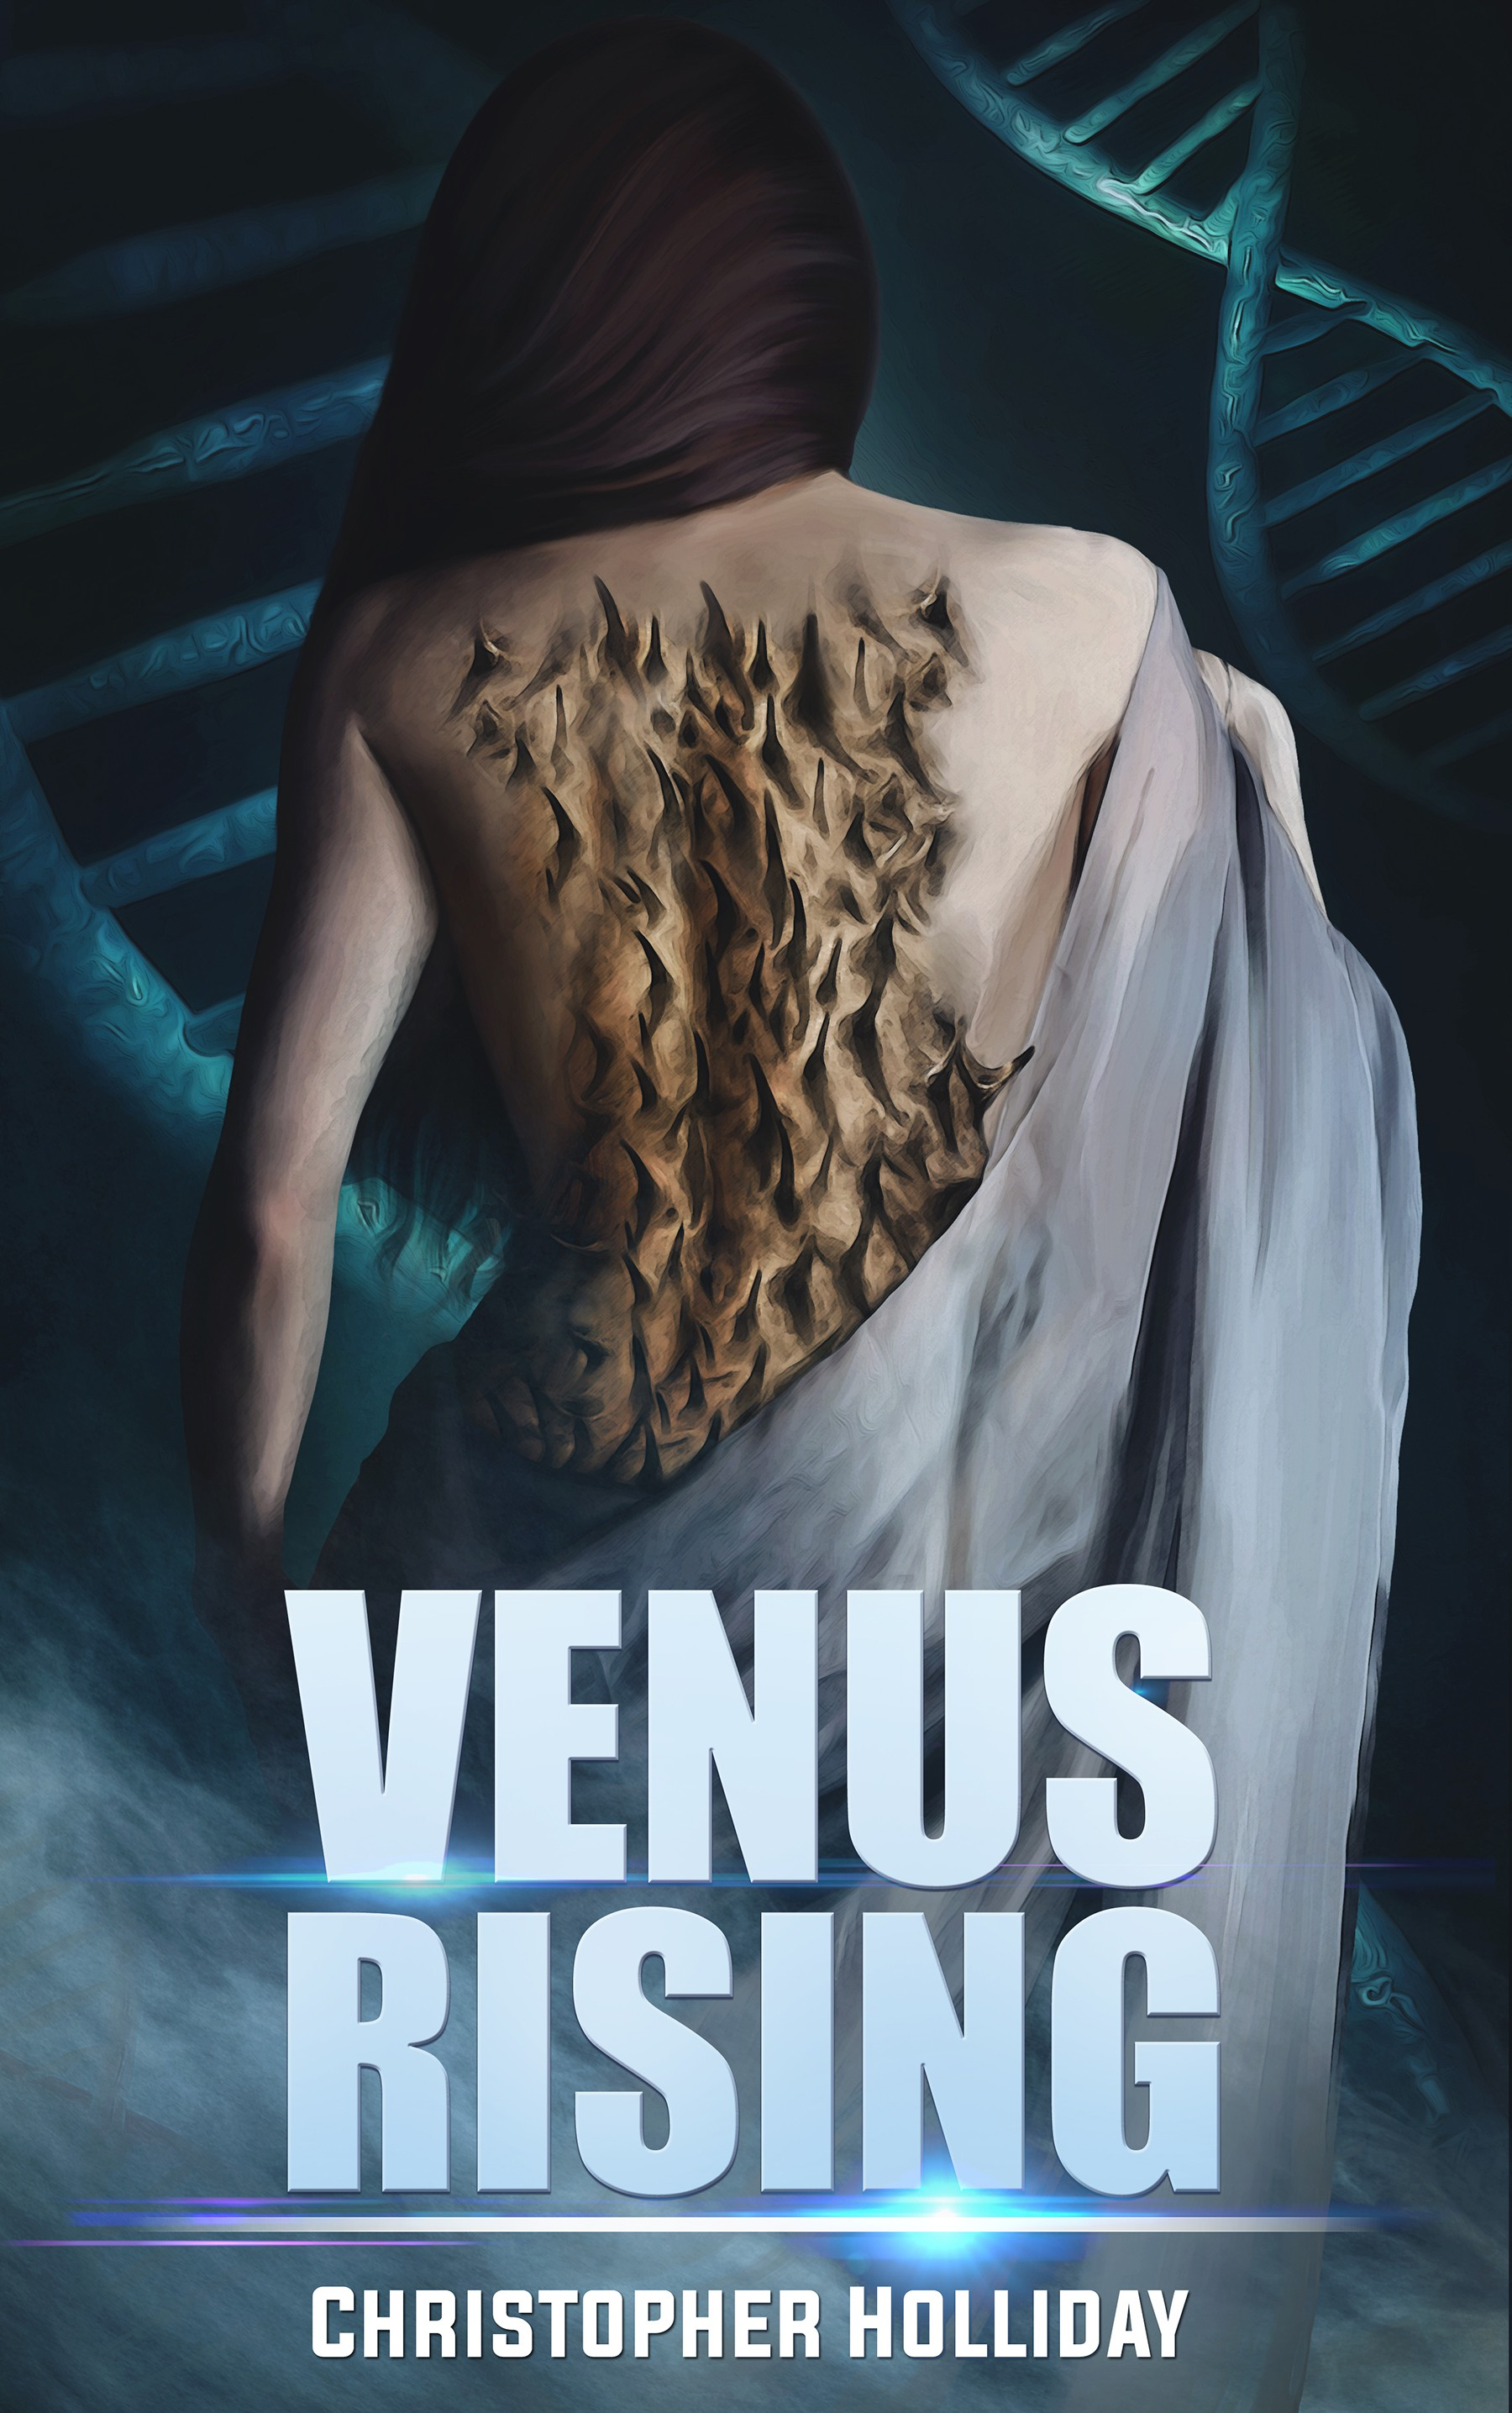 Venus Morphing Cover Art